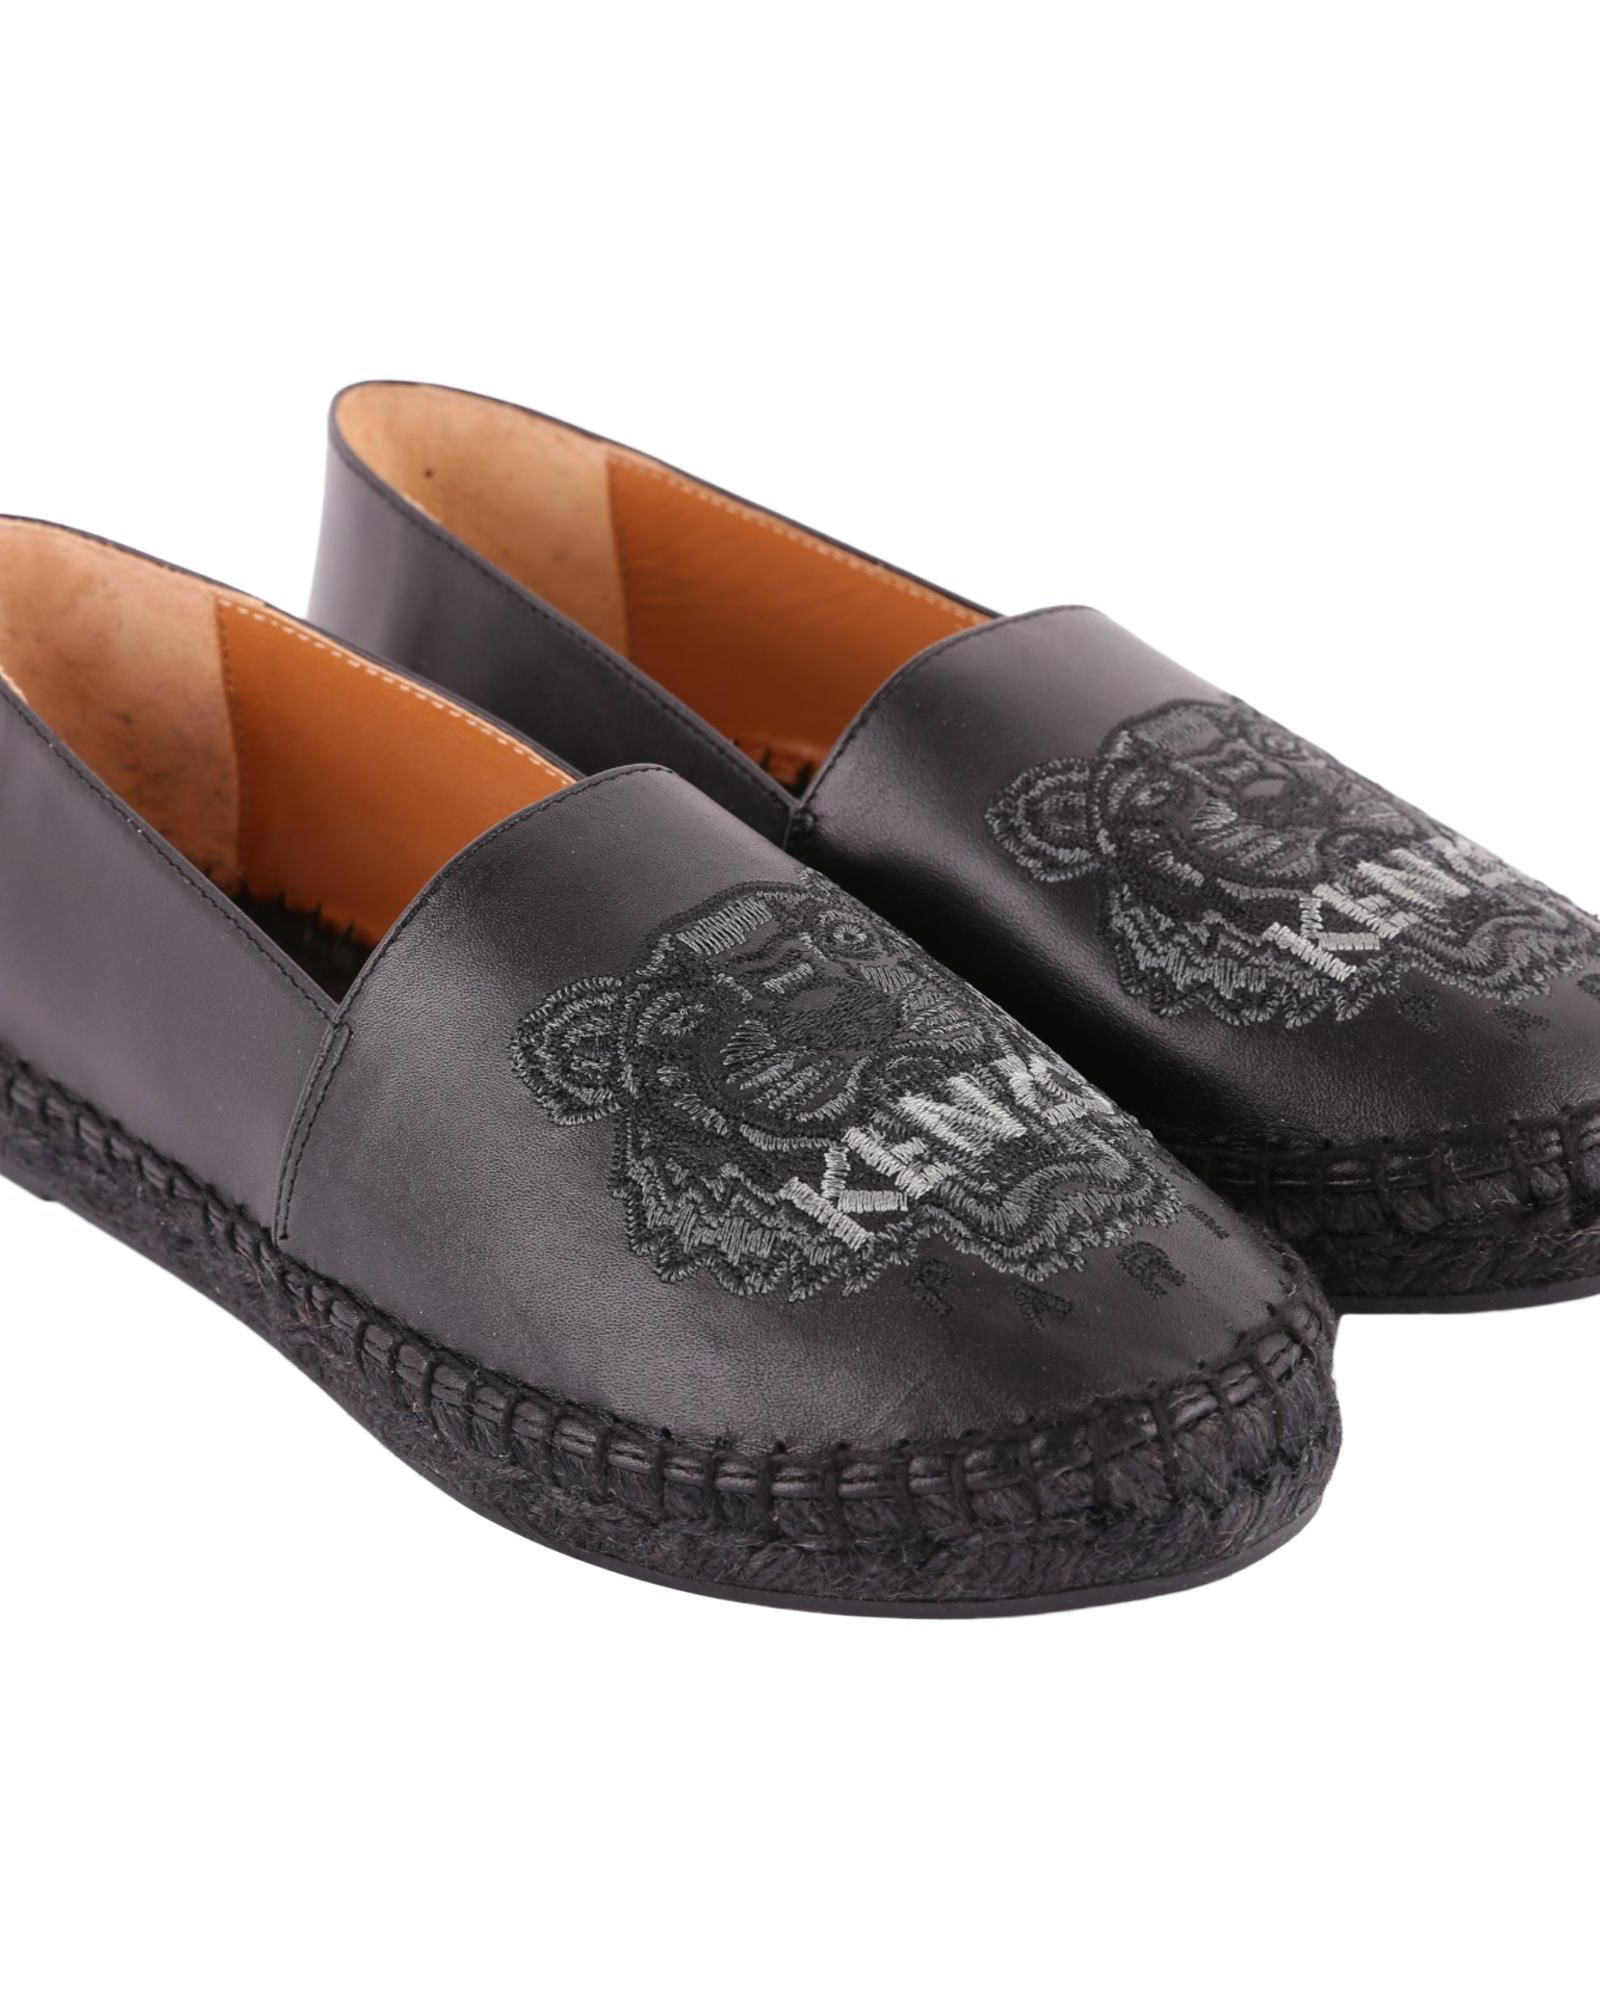 TIGER LEATHER ESPADRILLES